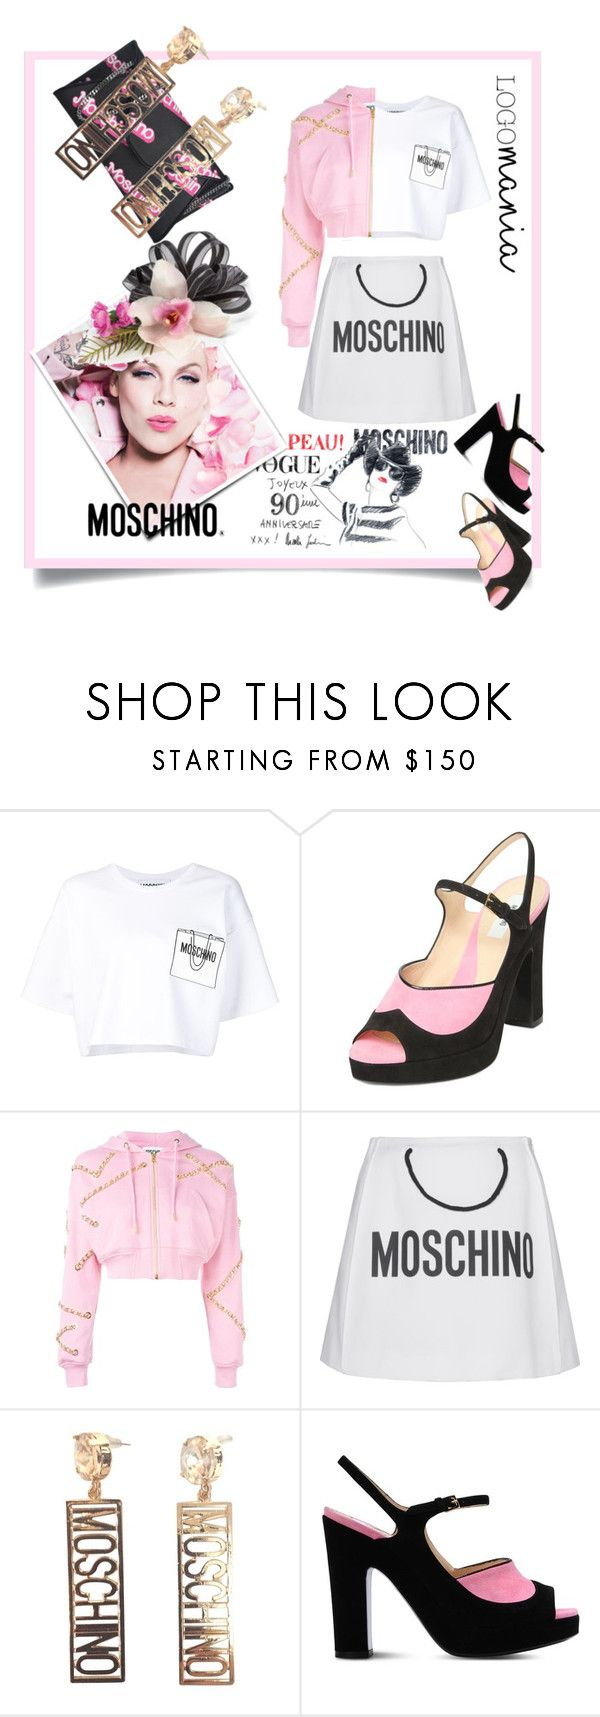 """Logomania"" by kari-c ❤ liked on Polyvore featuring moda, Moschino ve logomania"